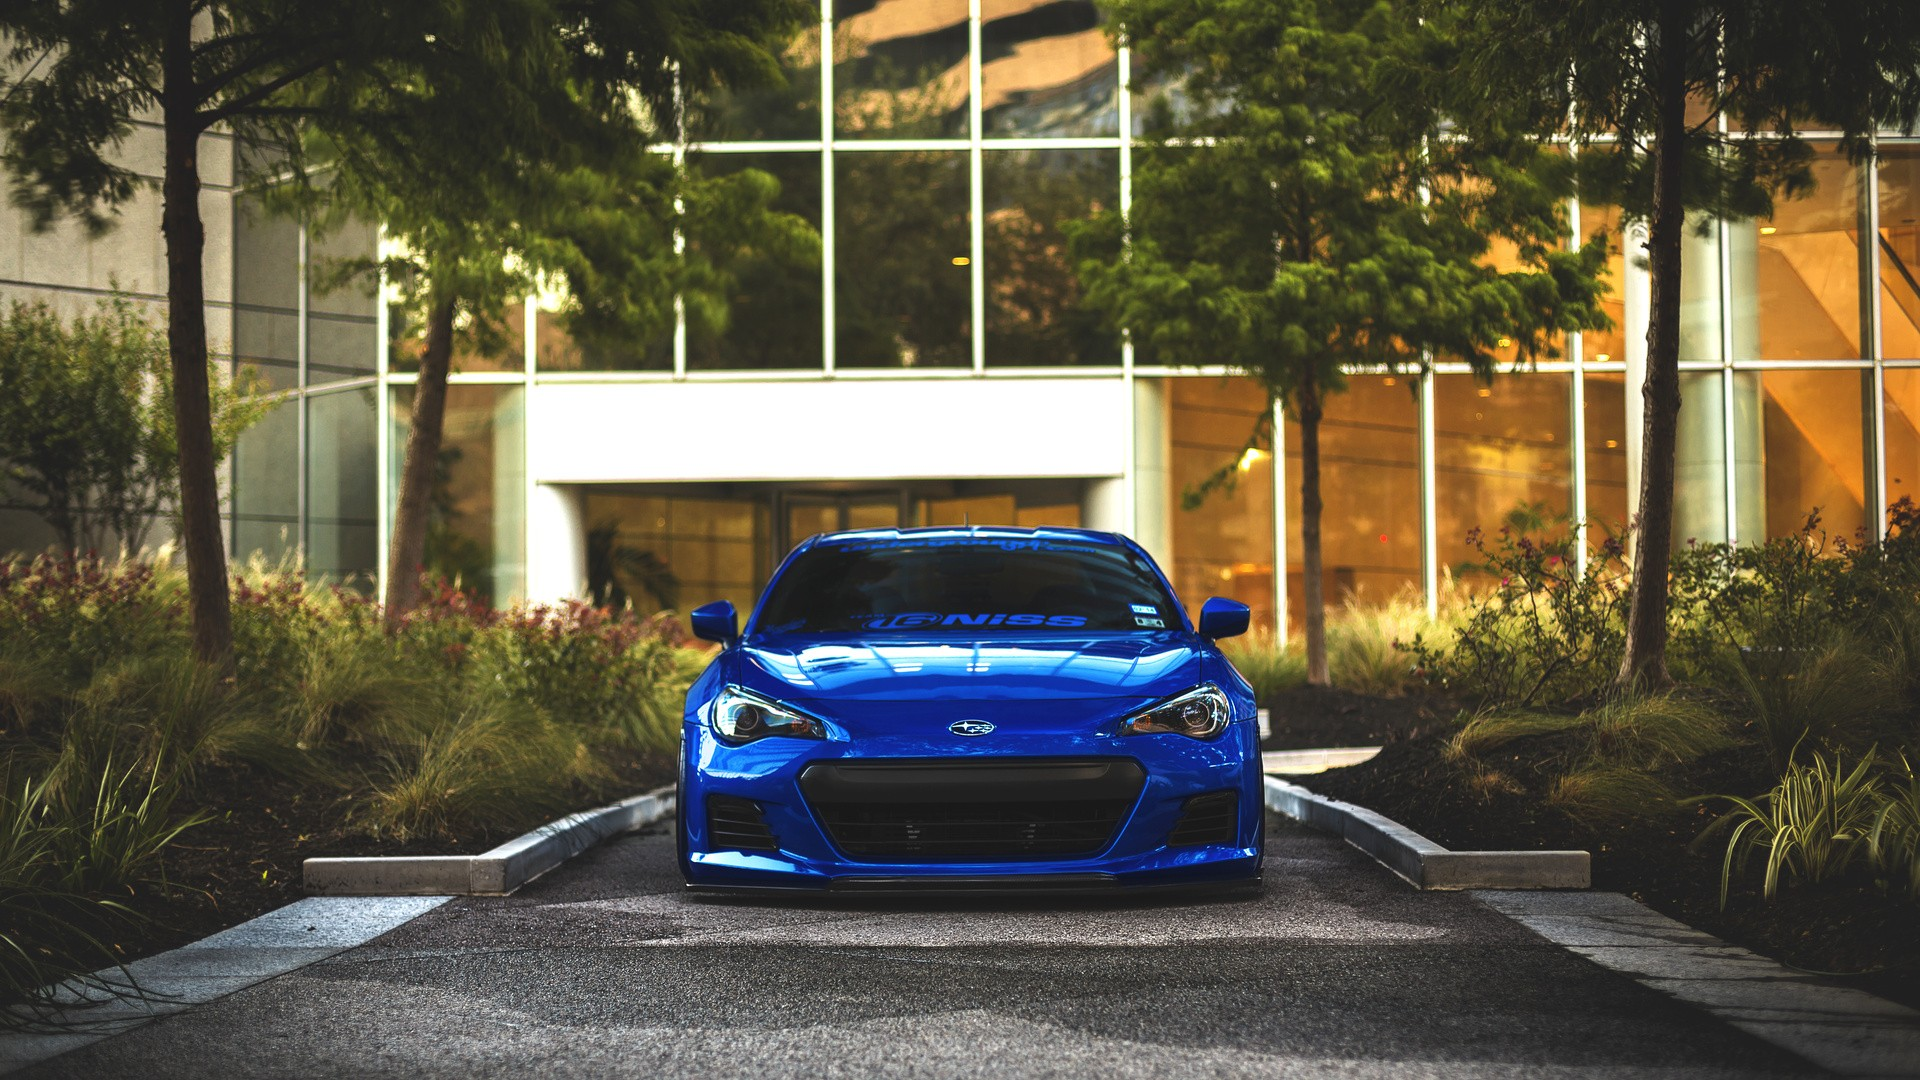 Super Car 5760x1080 Wallpaper Car Subaru Blue Cars Subaru Brz Wallpapers Hd Desktop